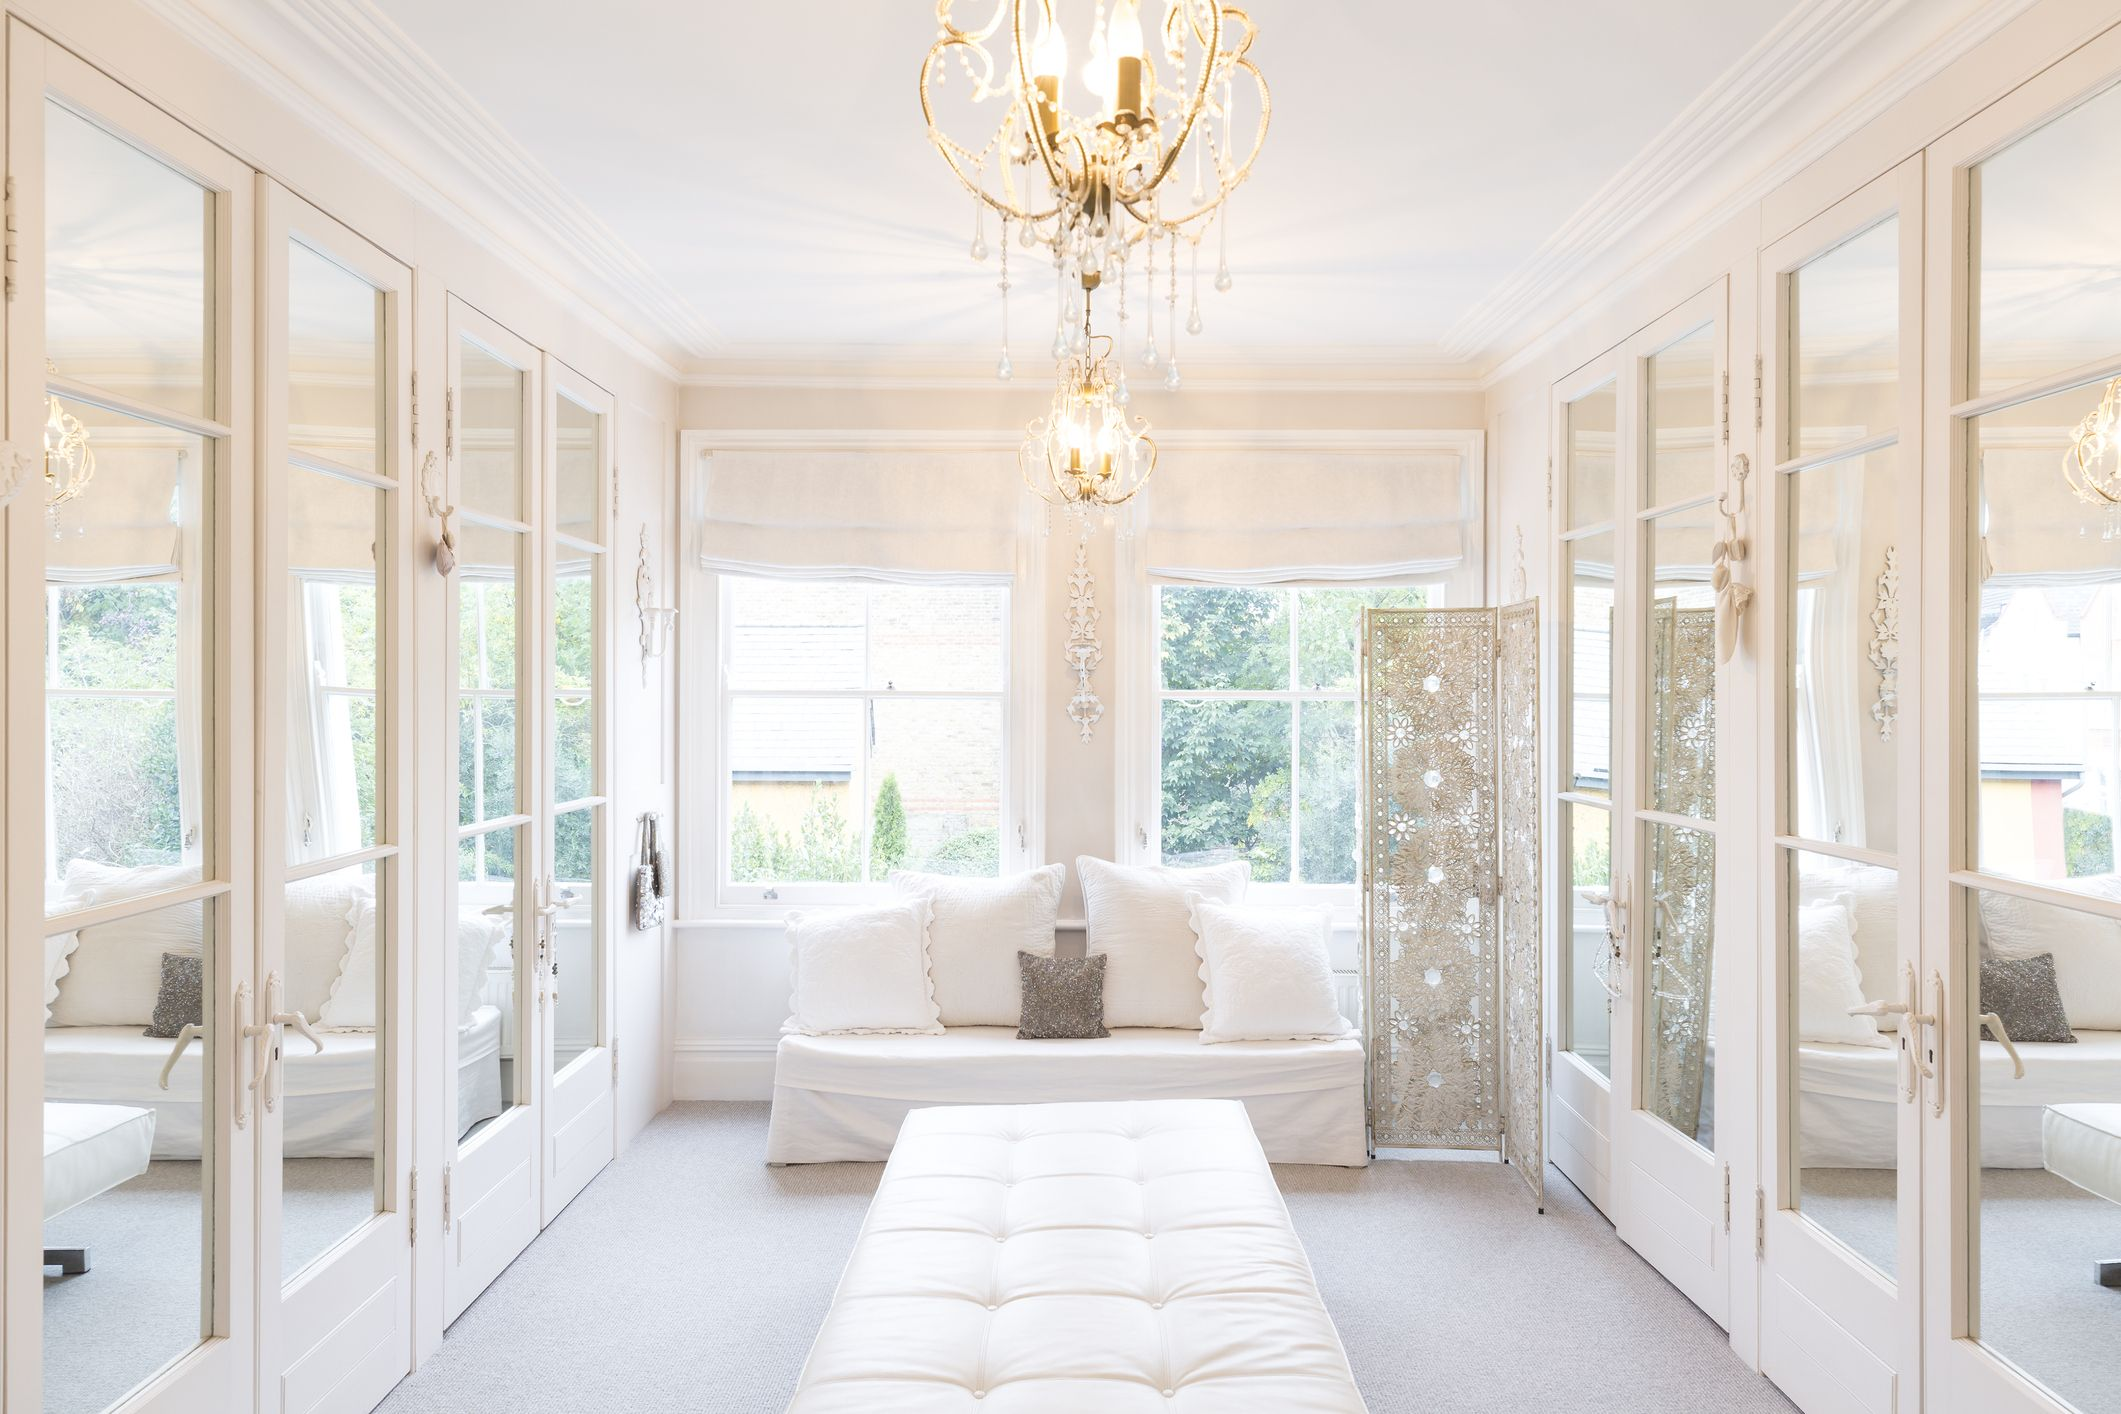 White, Luxury Home Showcase Interior Dressing Room With Mirrored Closets